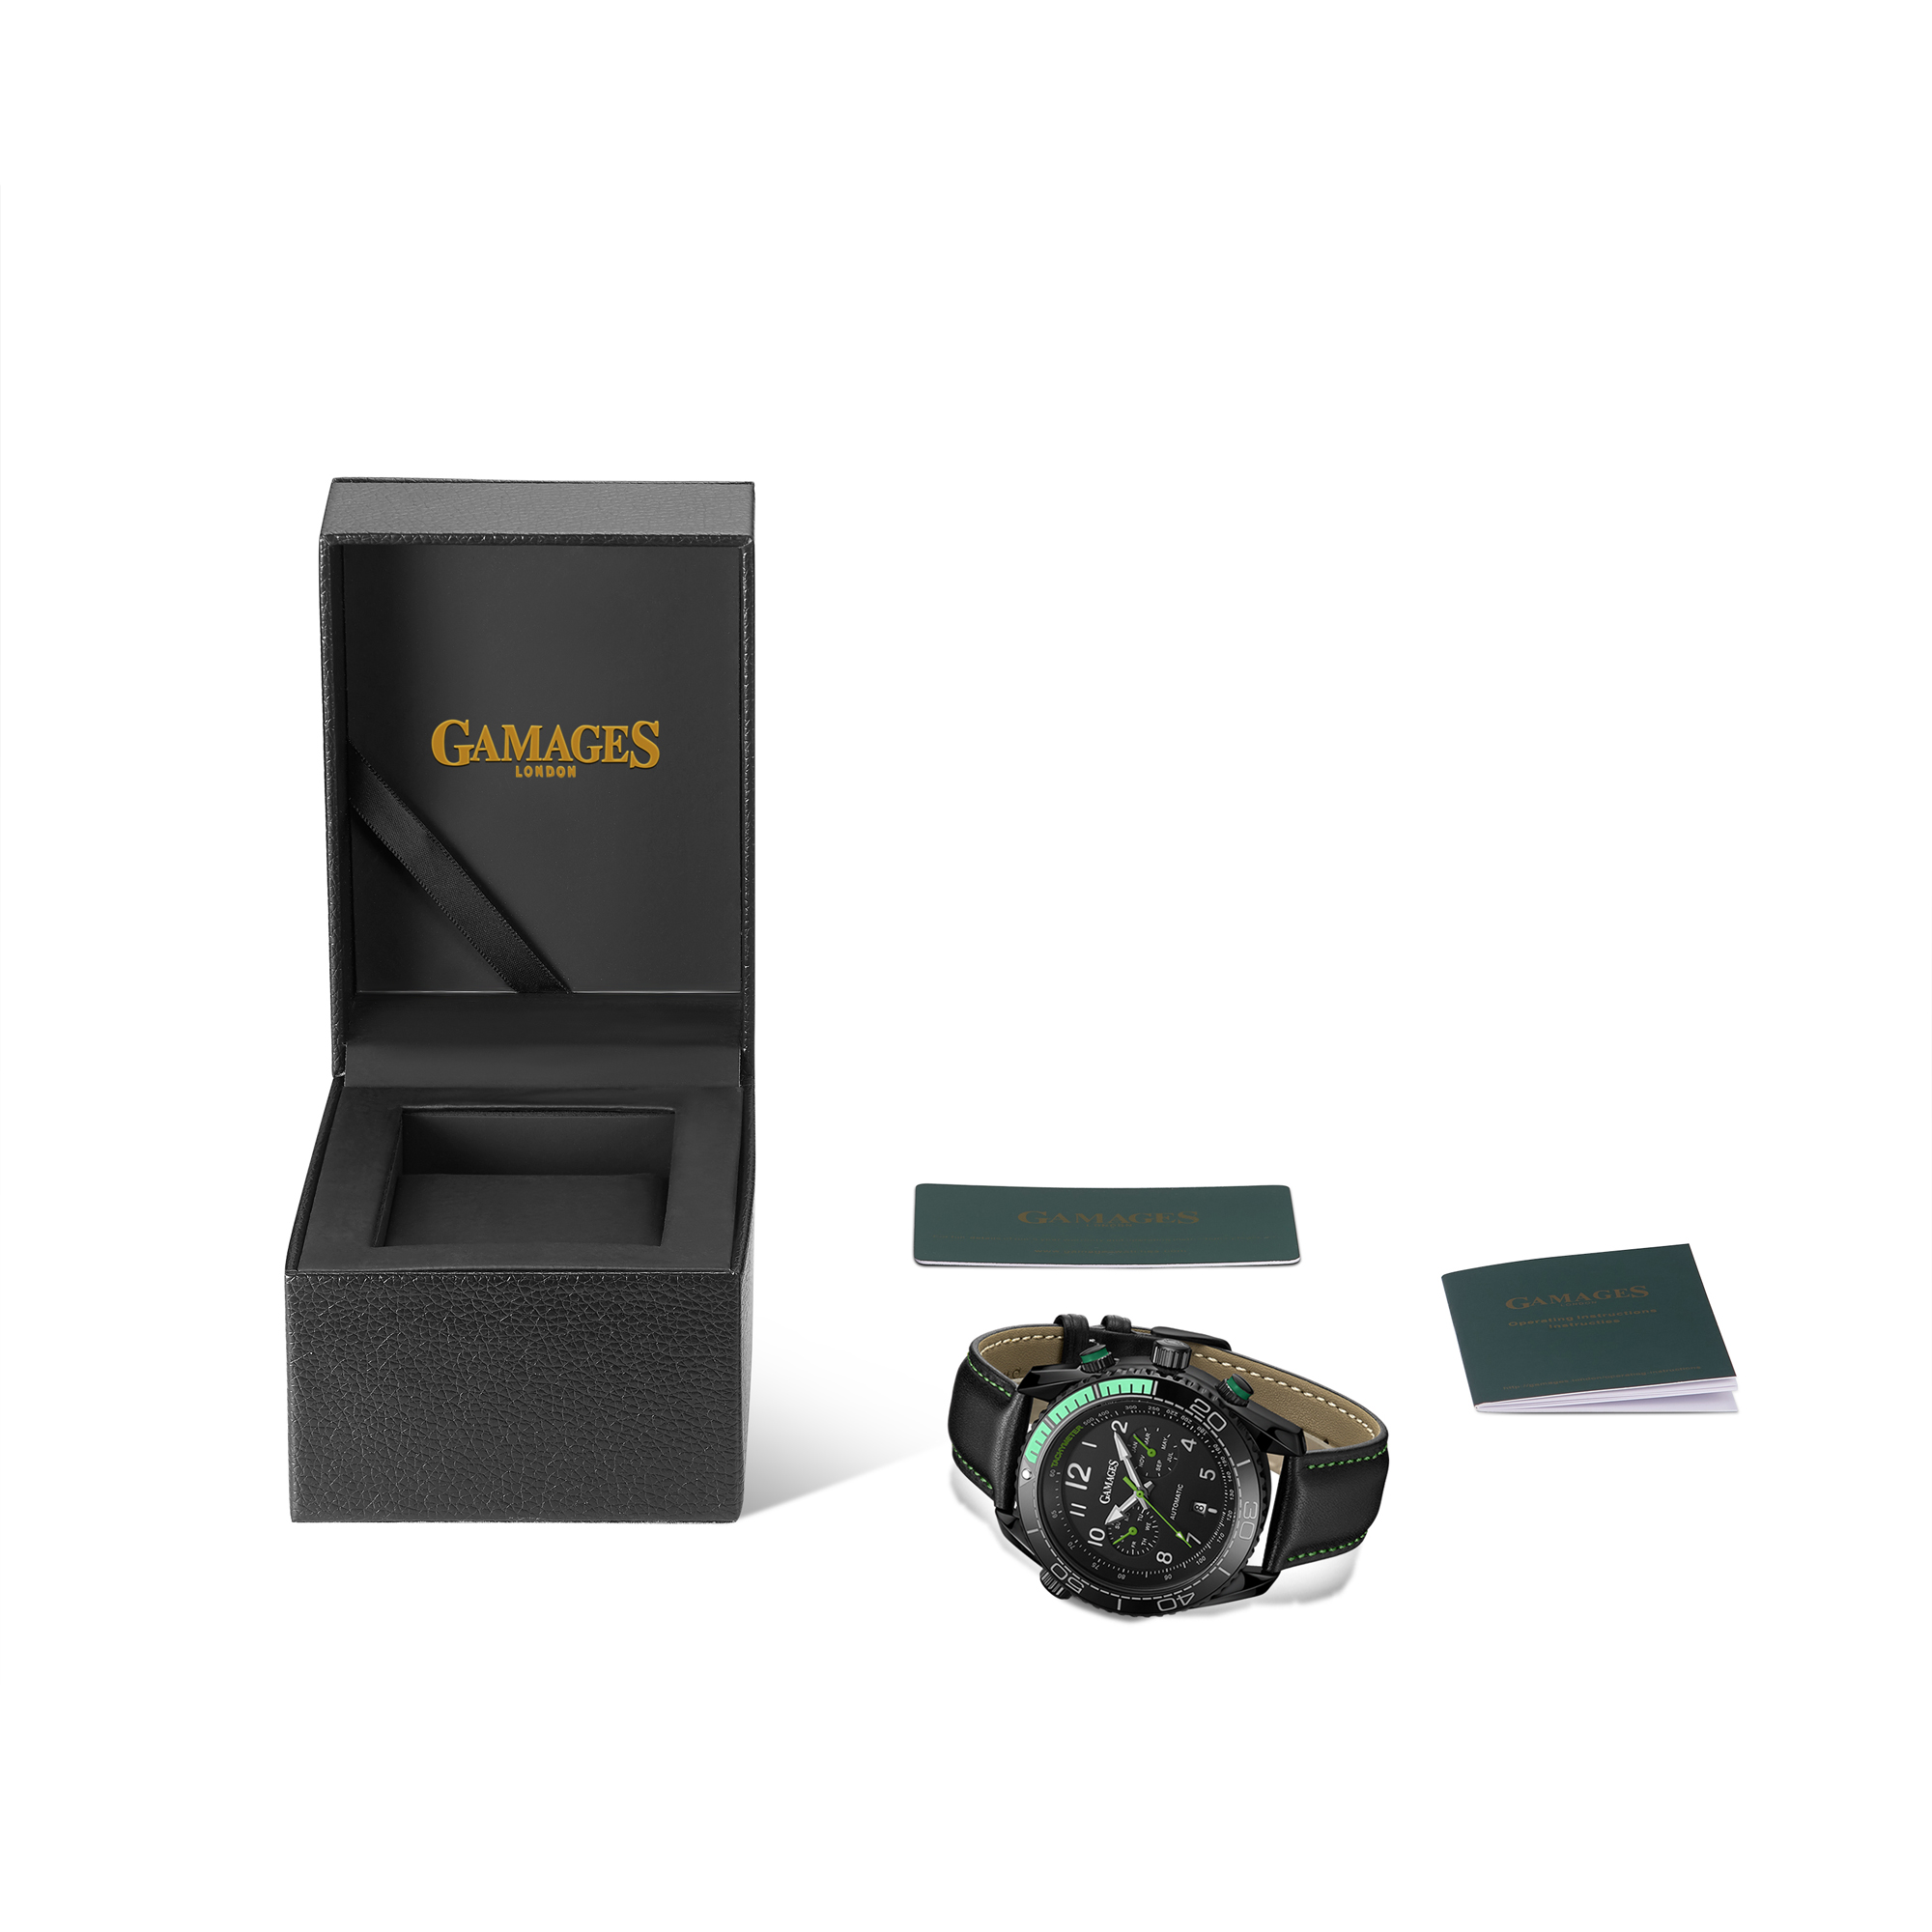 Limited Edition Hand Assembled GAMAGES Supreme Automatic Green – 5 Year Warranty & Free Delivery - Image 2 of 7